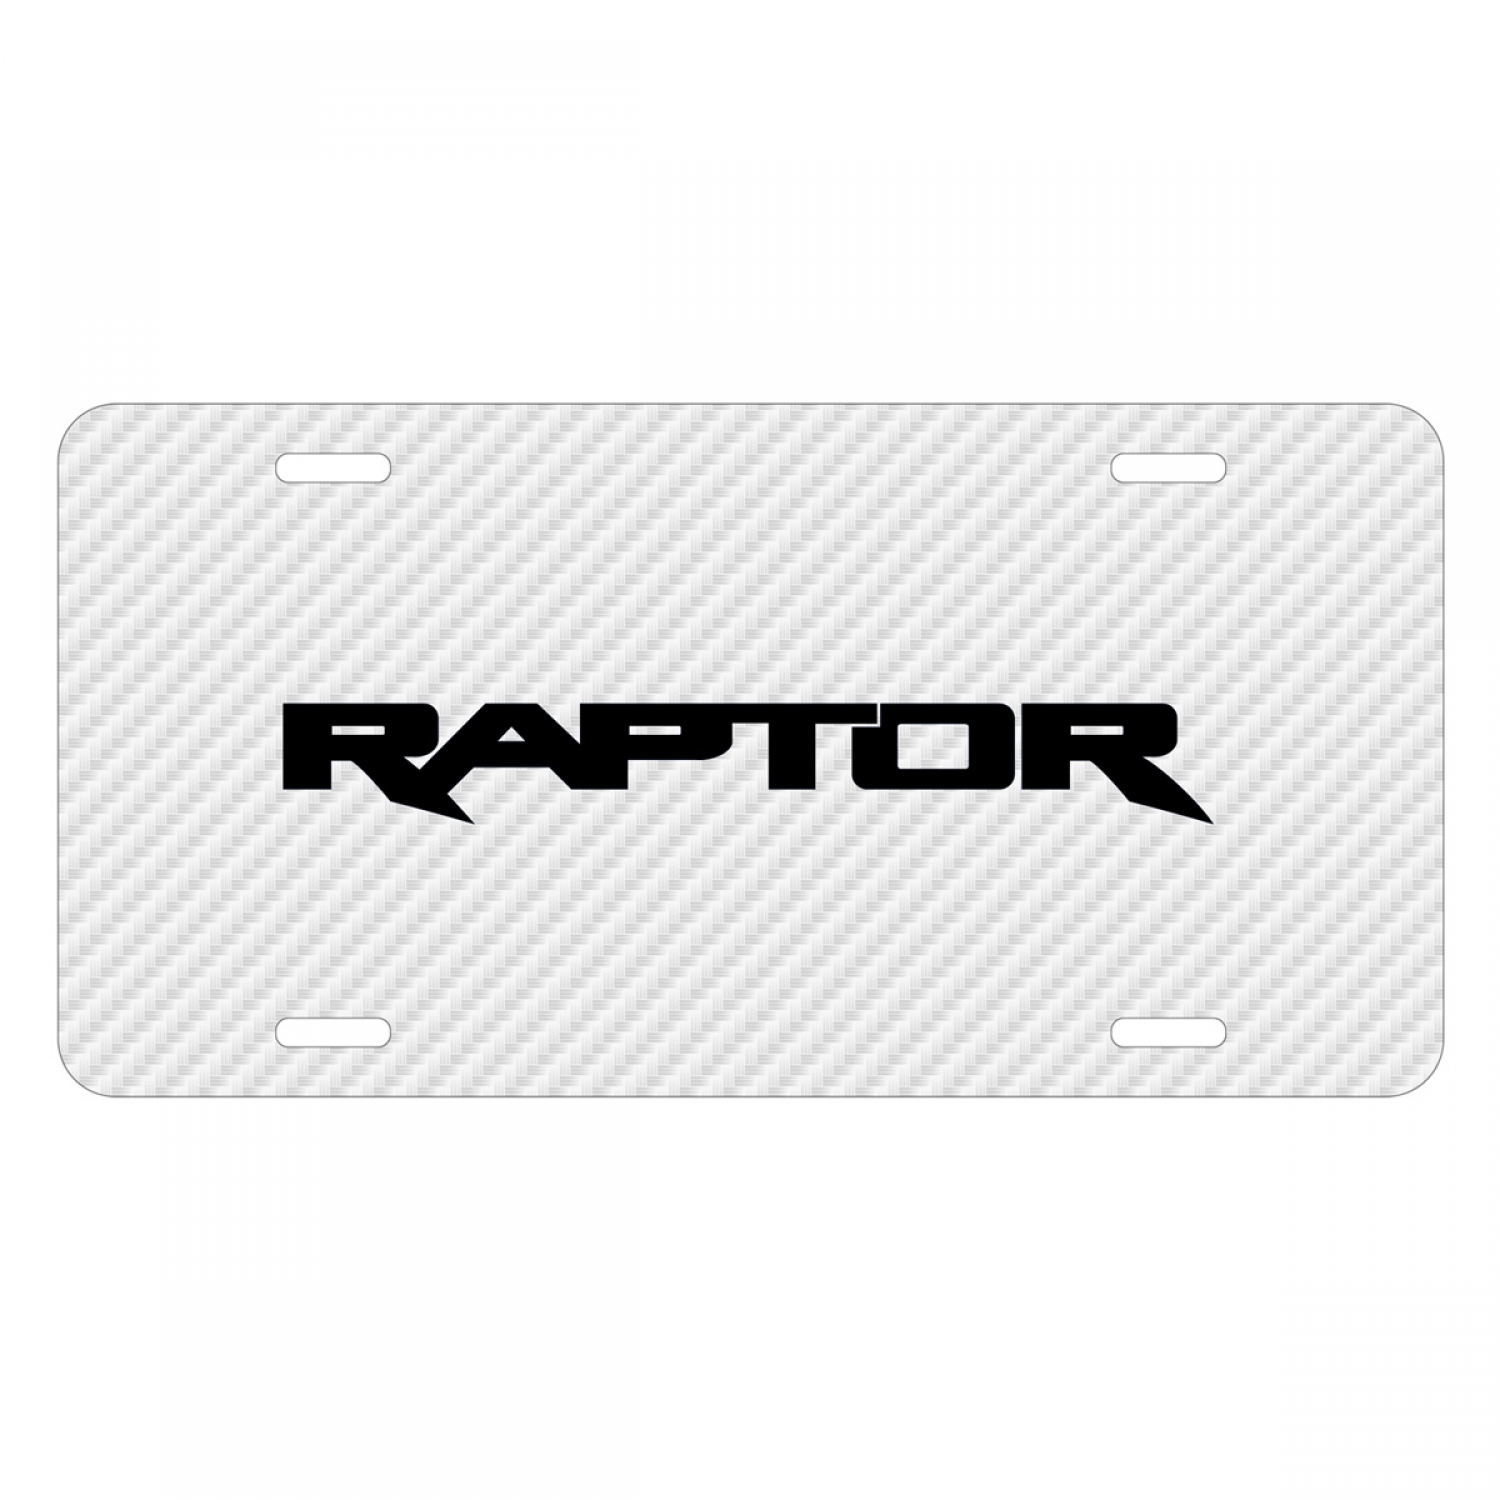 Ford F-150 Raptor 2017 White Carbon Fiber Texture Graphic UV Metal License Plate